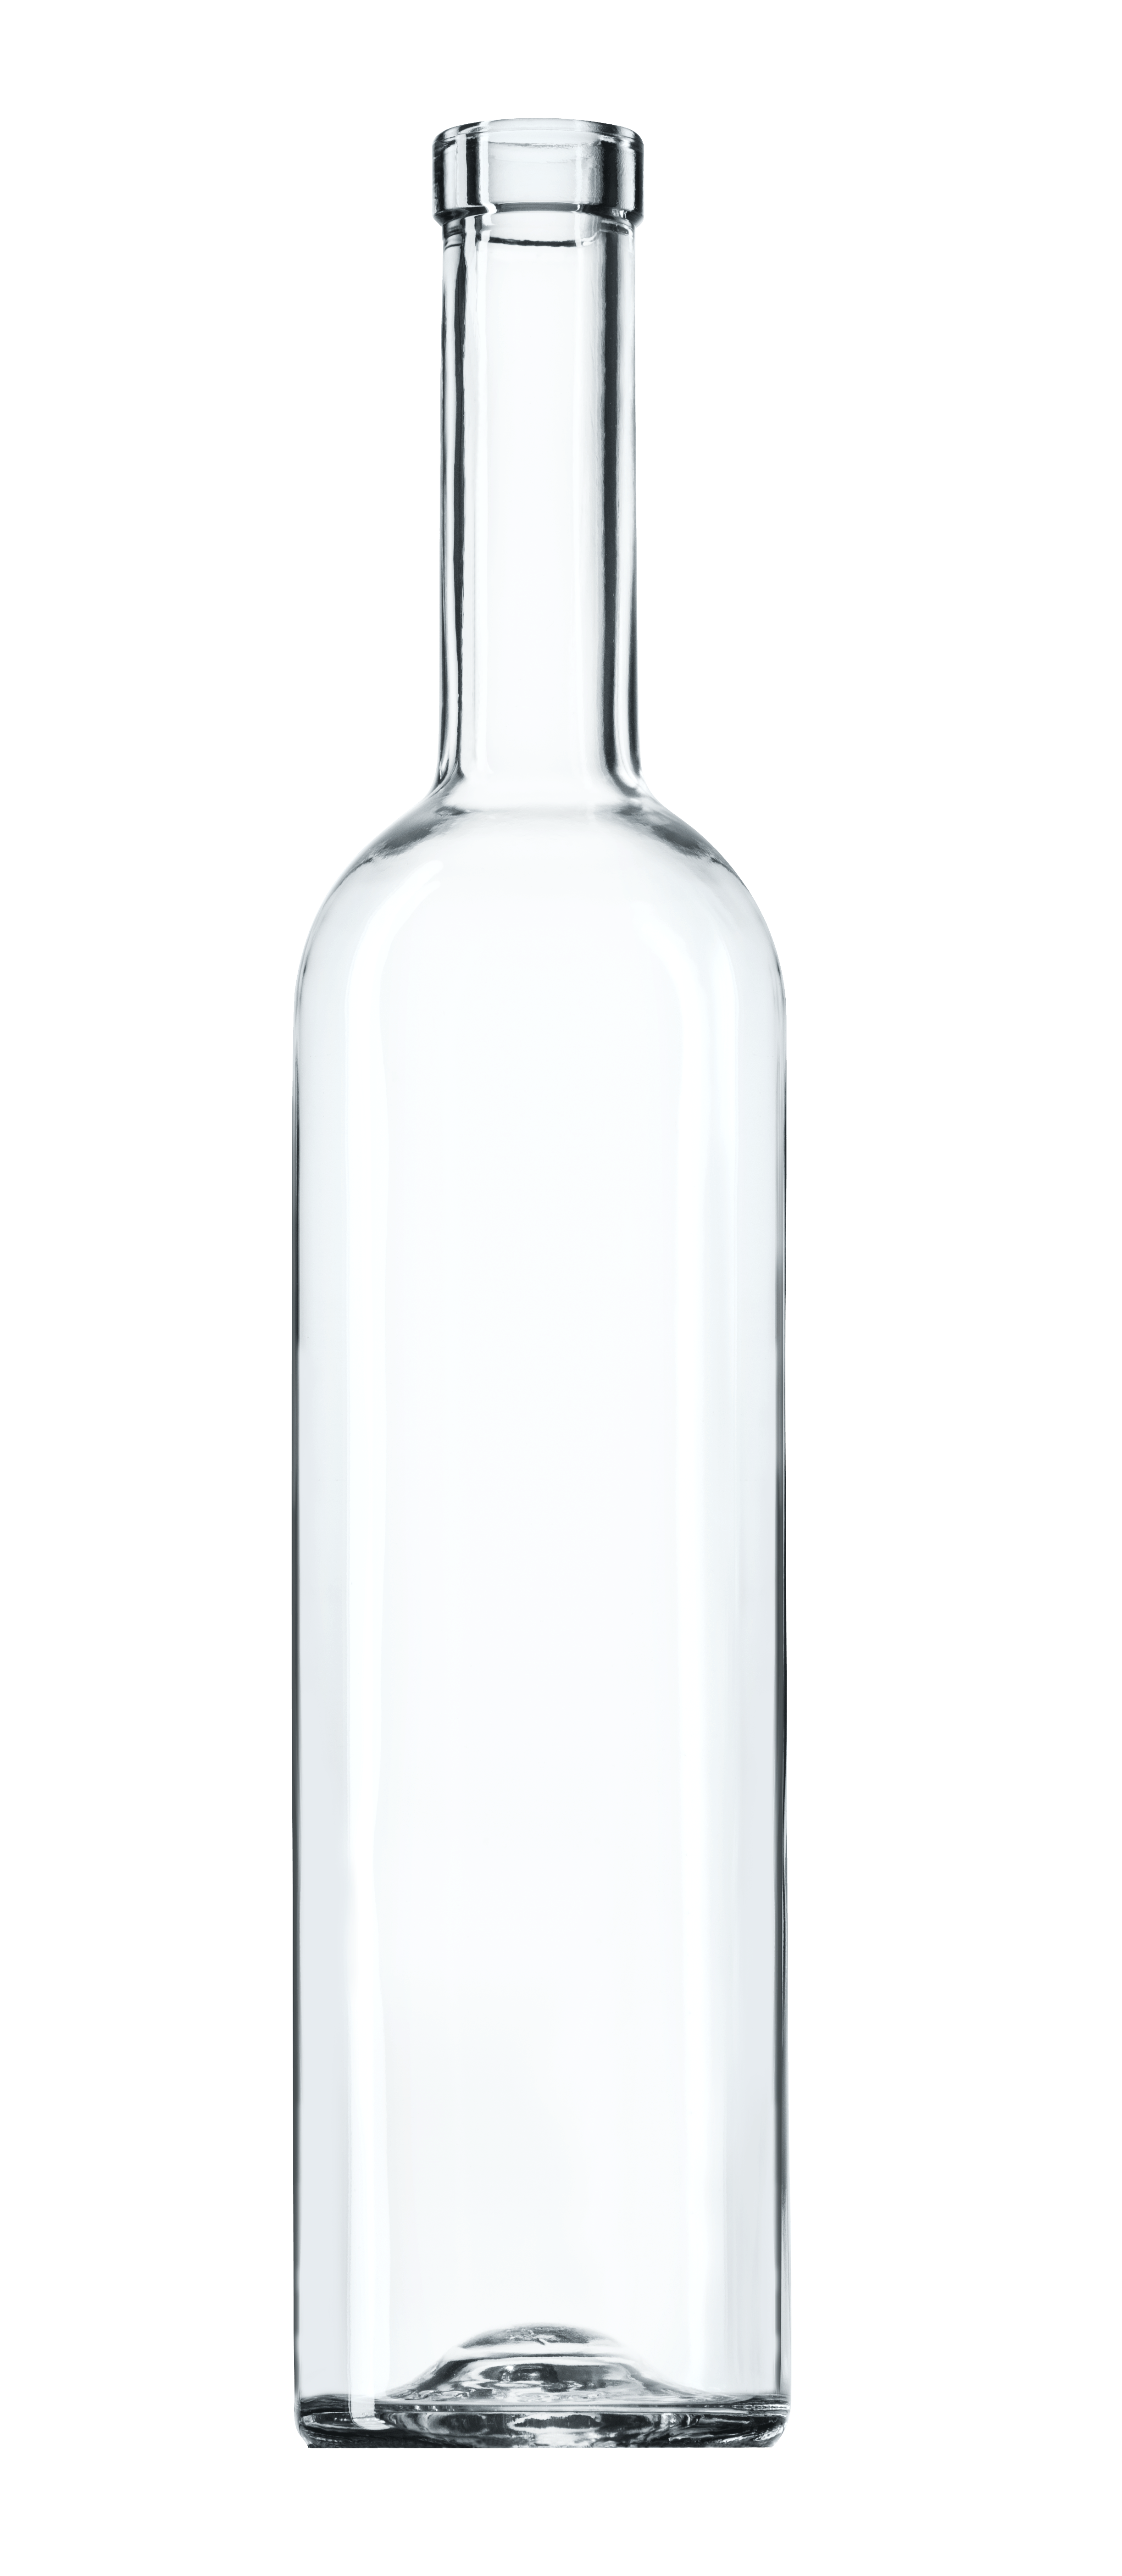 Futura Liquor bottle sold by SGP Packaging by Verallia